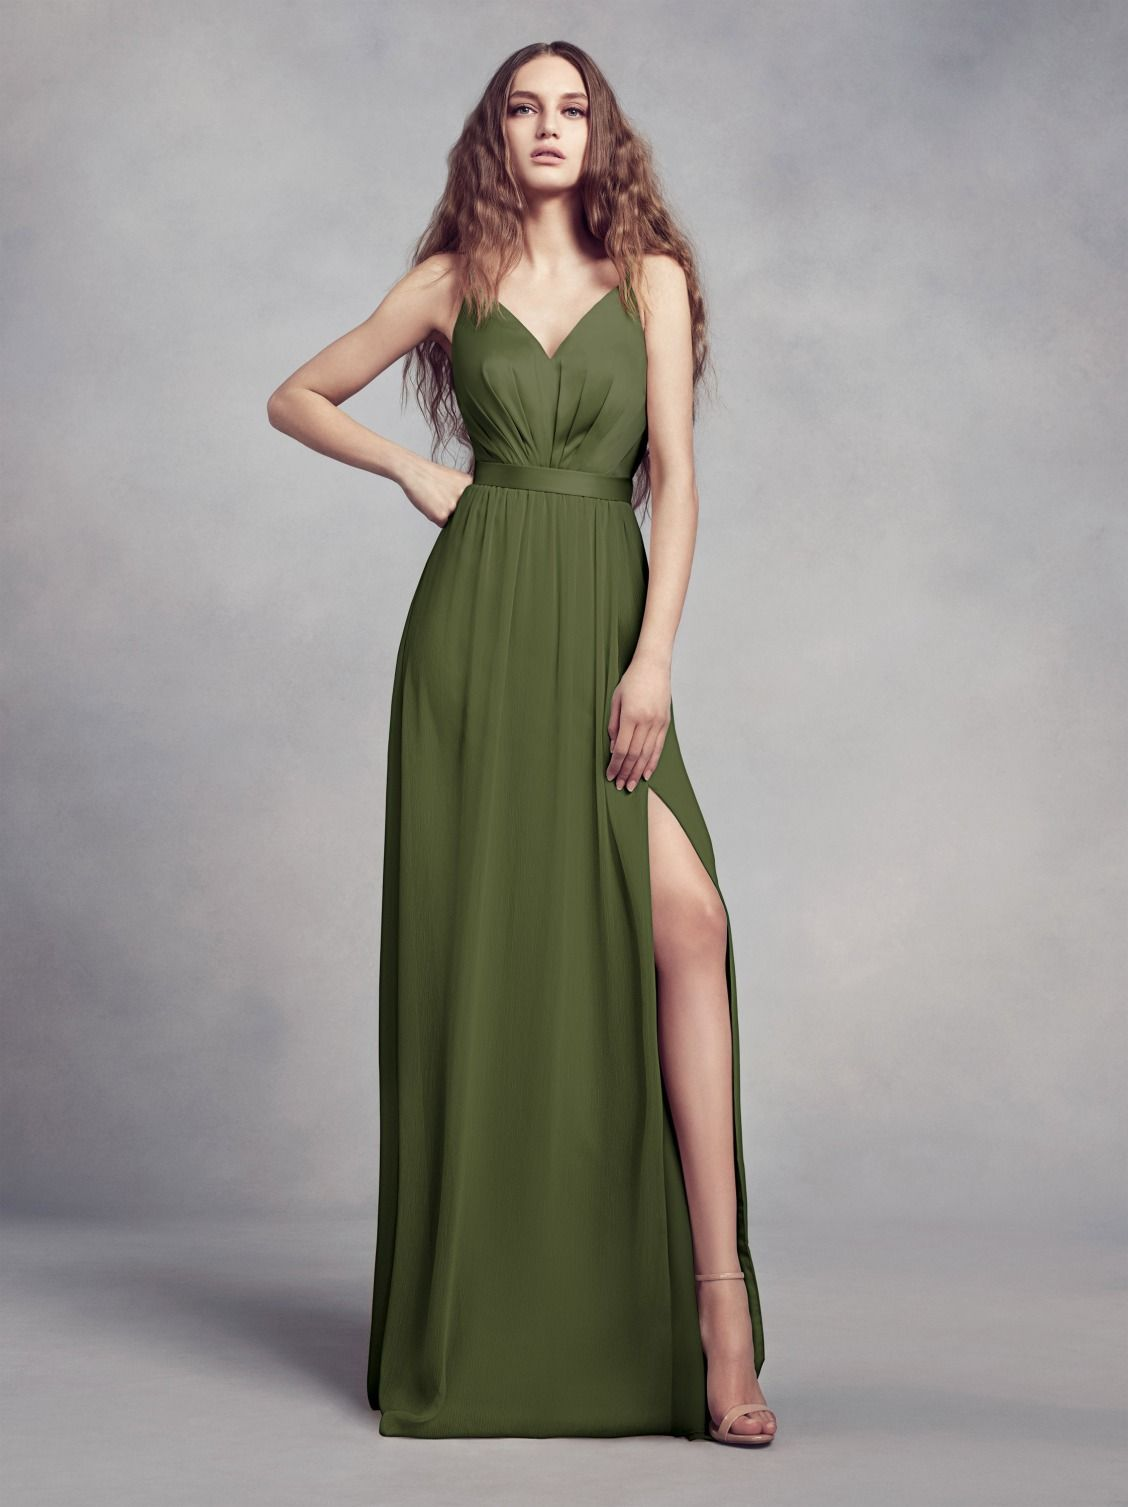 The Newest Color From Vera An Olive Bridesmaid Dress For Chic Bridal Party This Illusion Back V Neck At David S